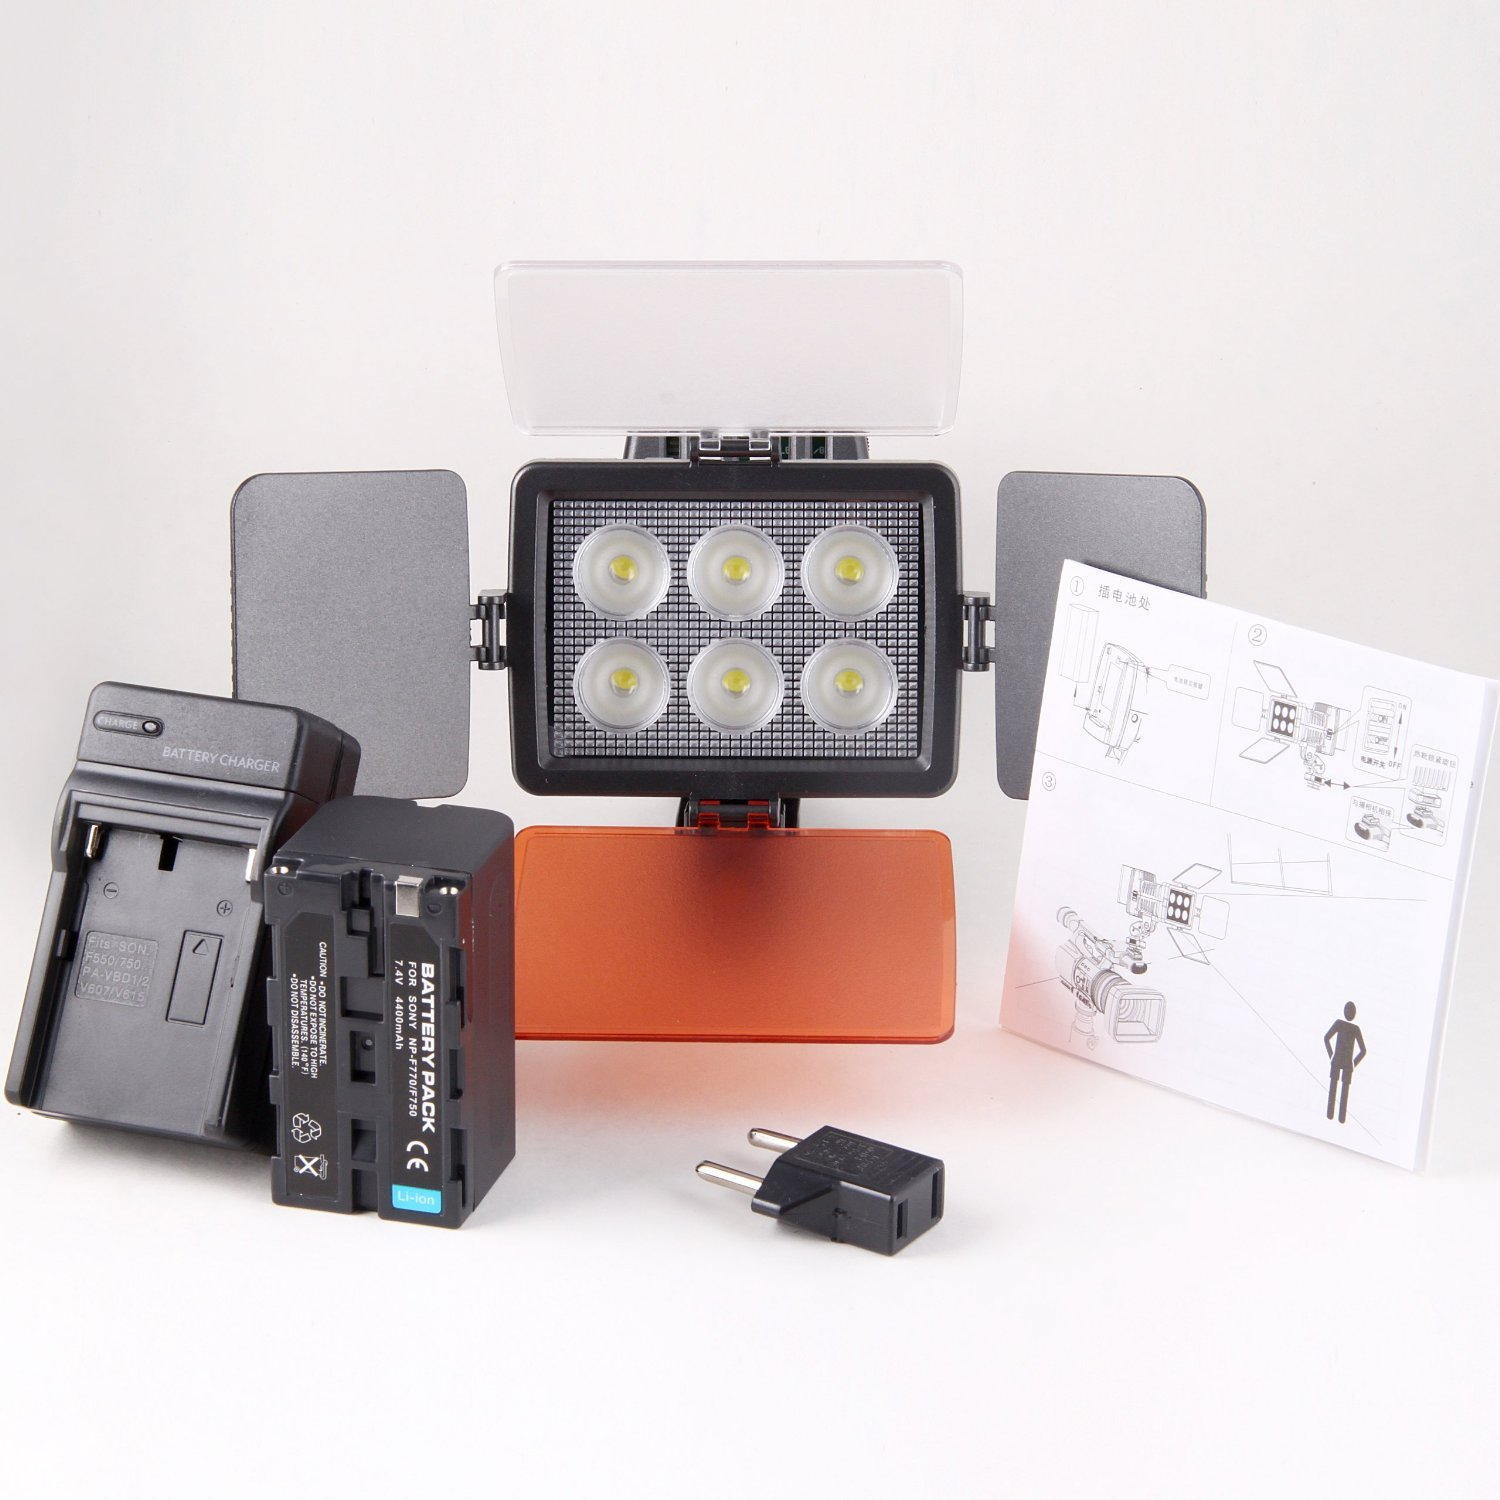 Kaavie - Professional & Improved Quality - High Brightness 6 LED Video Light + F750 Battery - Full LED Lights for Dslrs and Camcorders Canon - Nikon - Olympus - Sony - Panasonic - Pentax by Kaavie